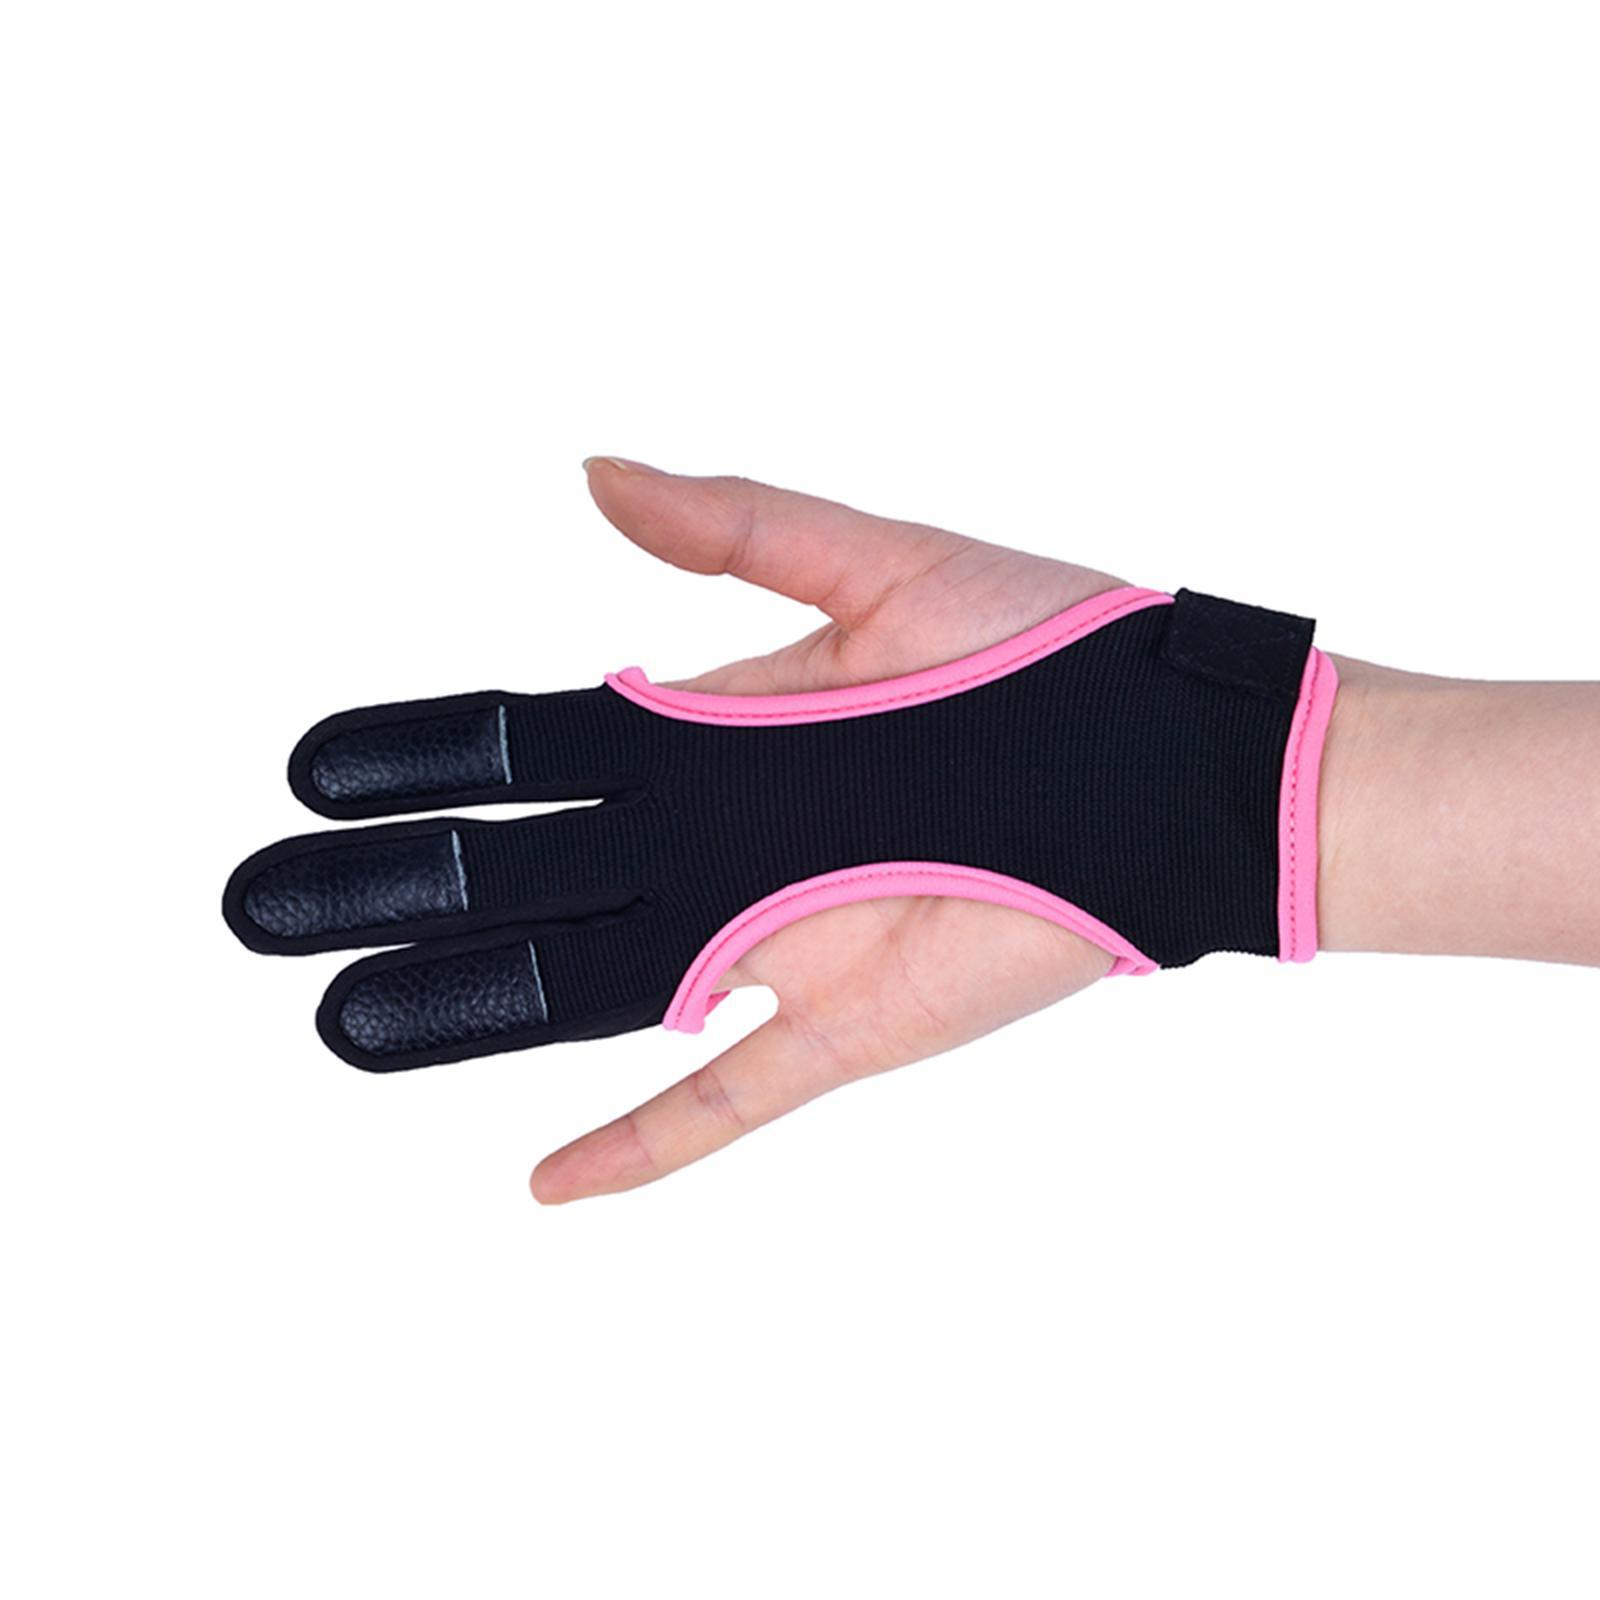 thumbnail 4 - 1 Piece Archery Gloves Shooting Hunting Leather Three Finger Protector for Youth